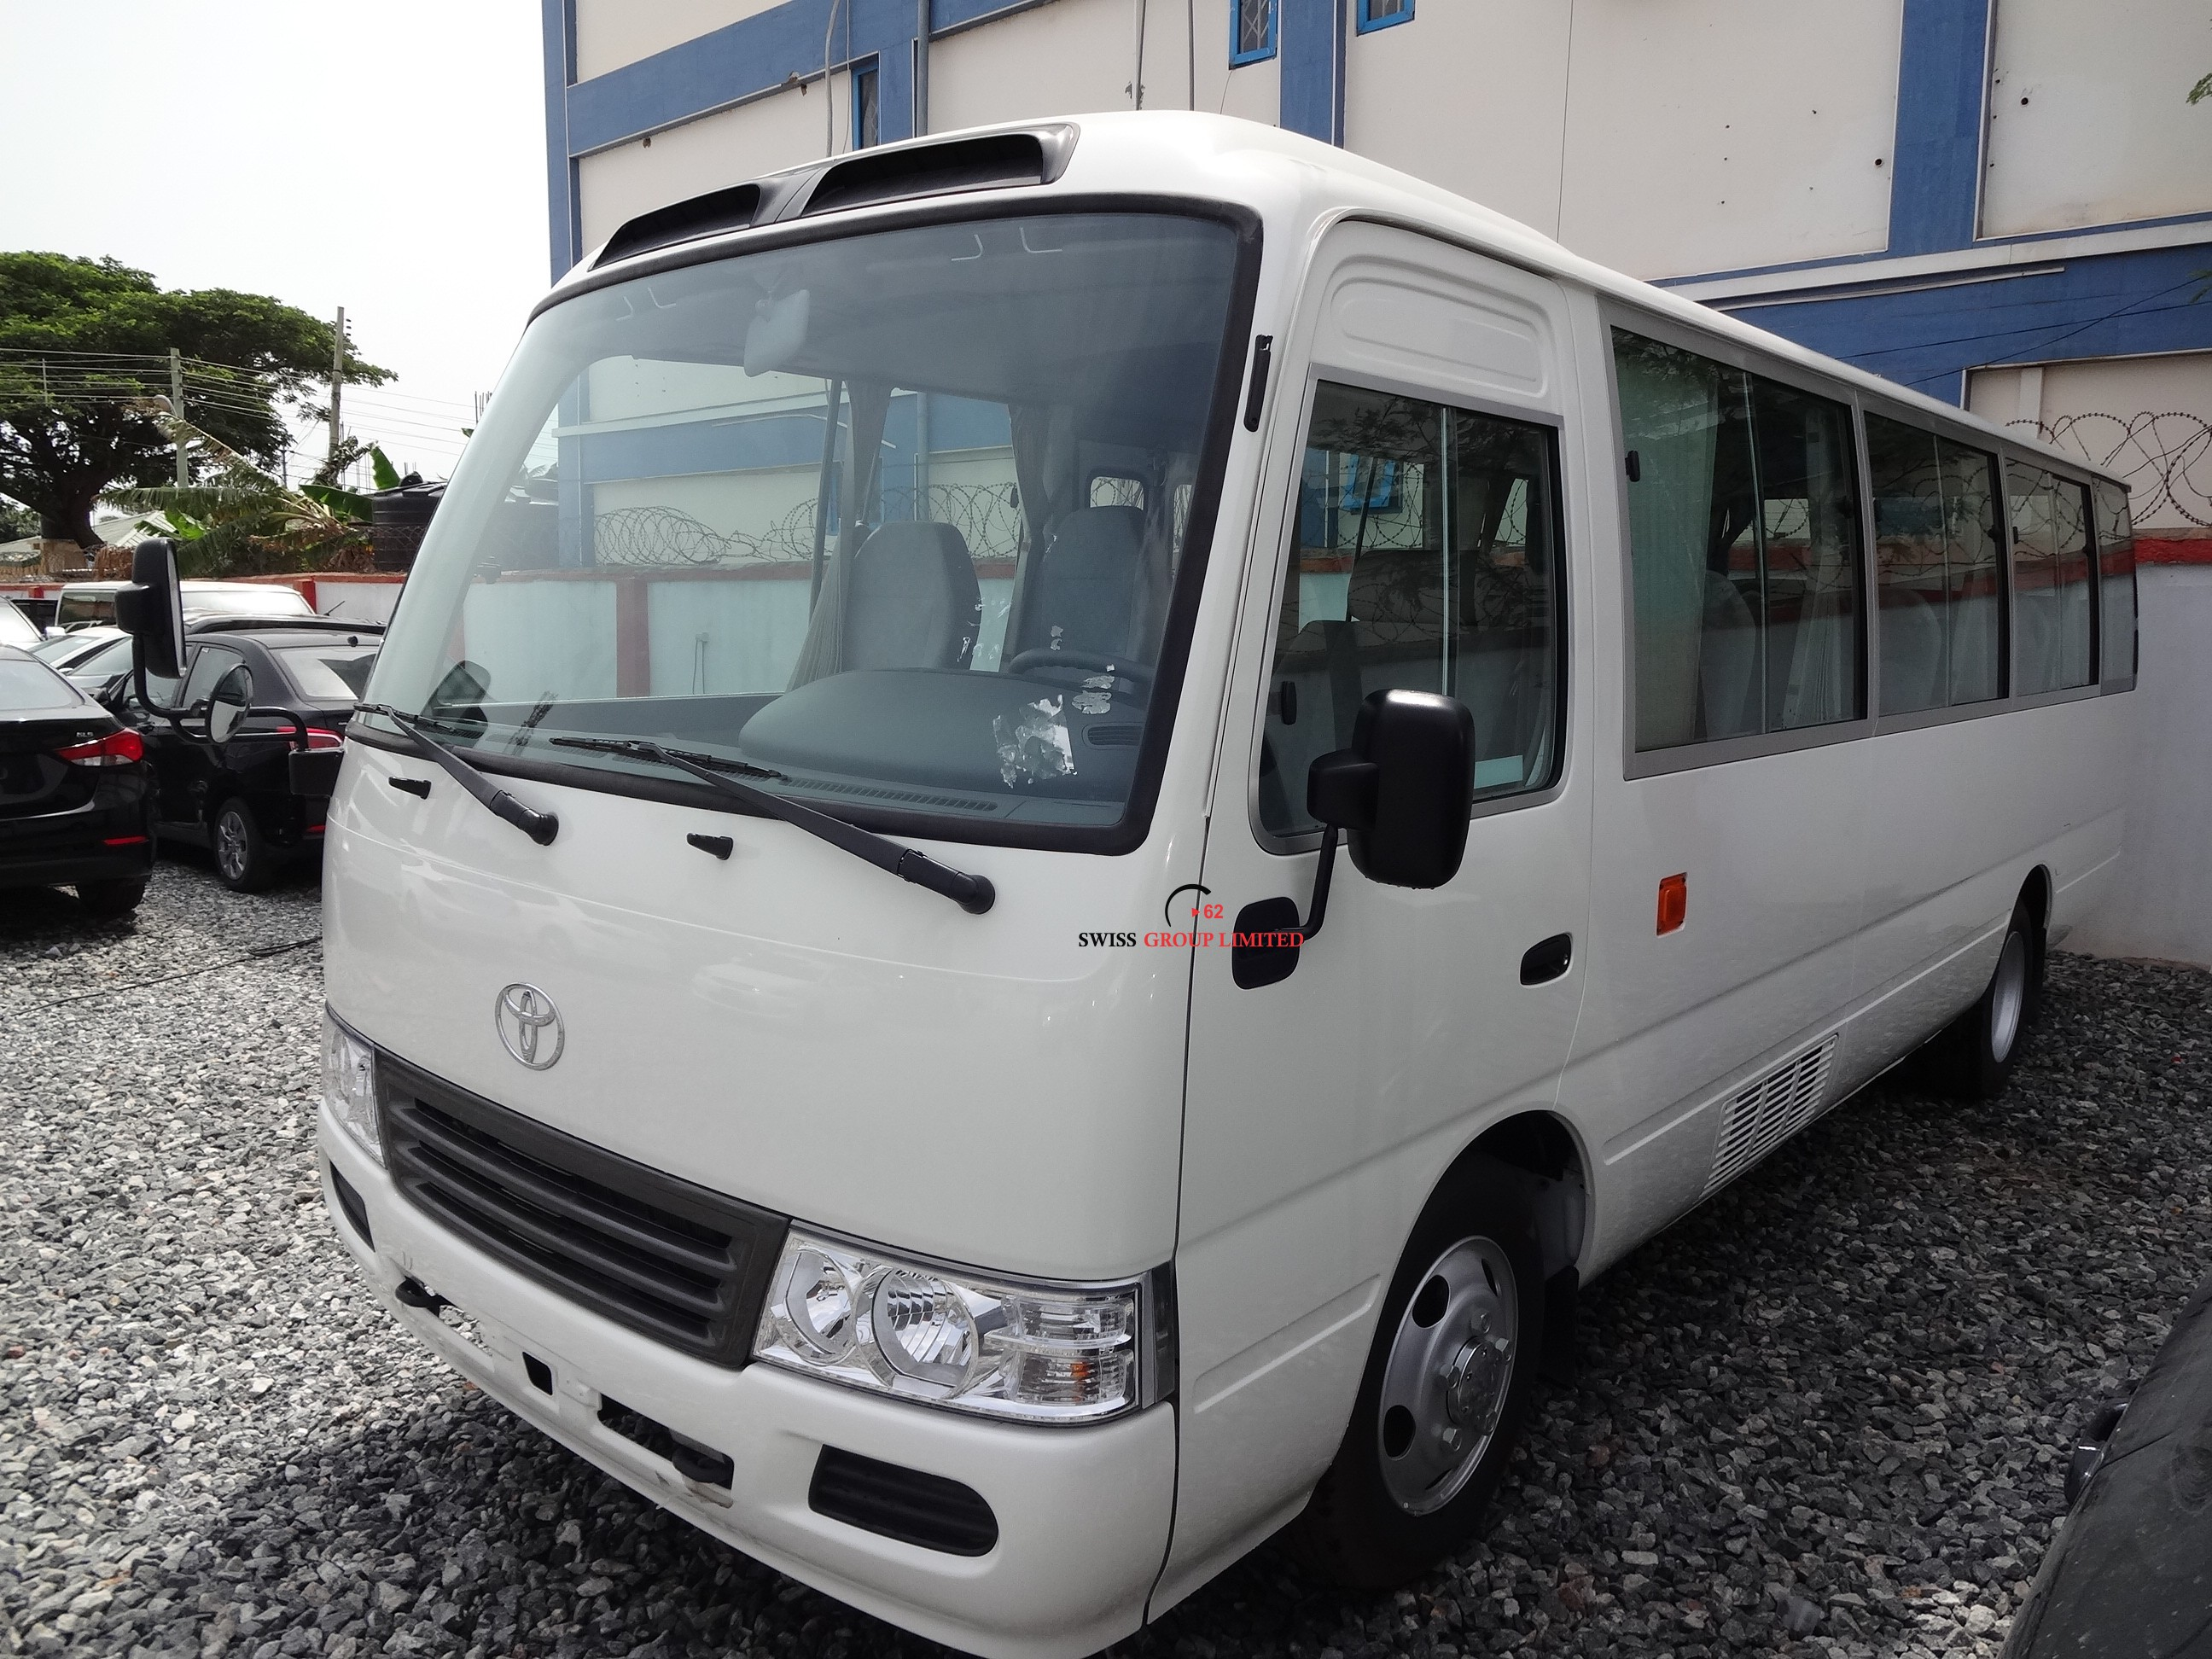 Toyota Coaster 4 2l Diesel Swiss Group Limited